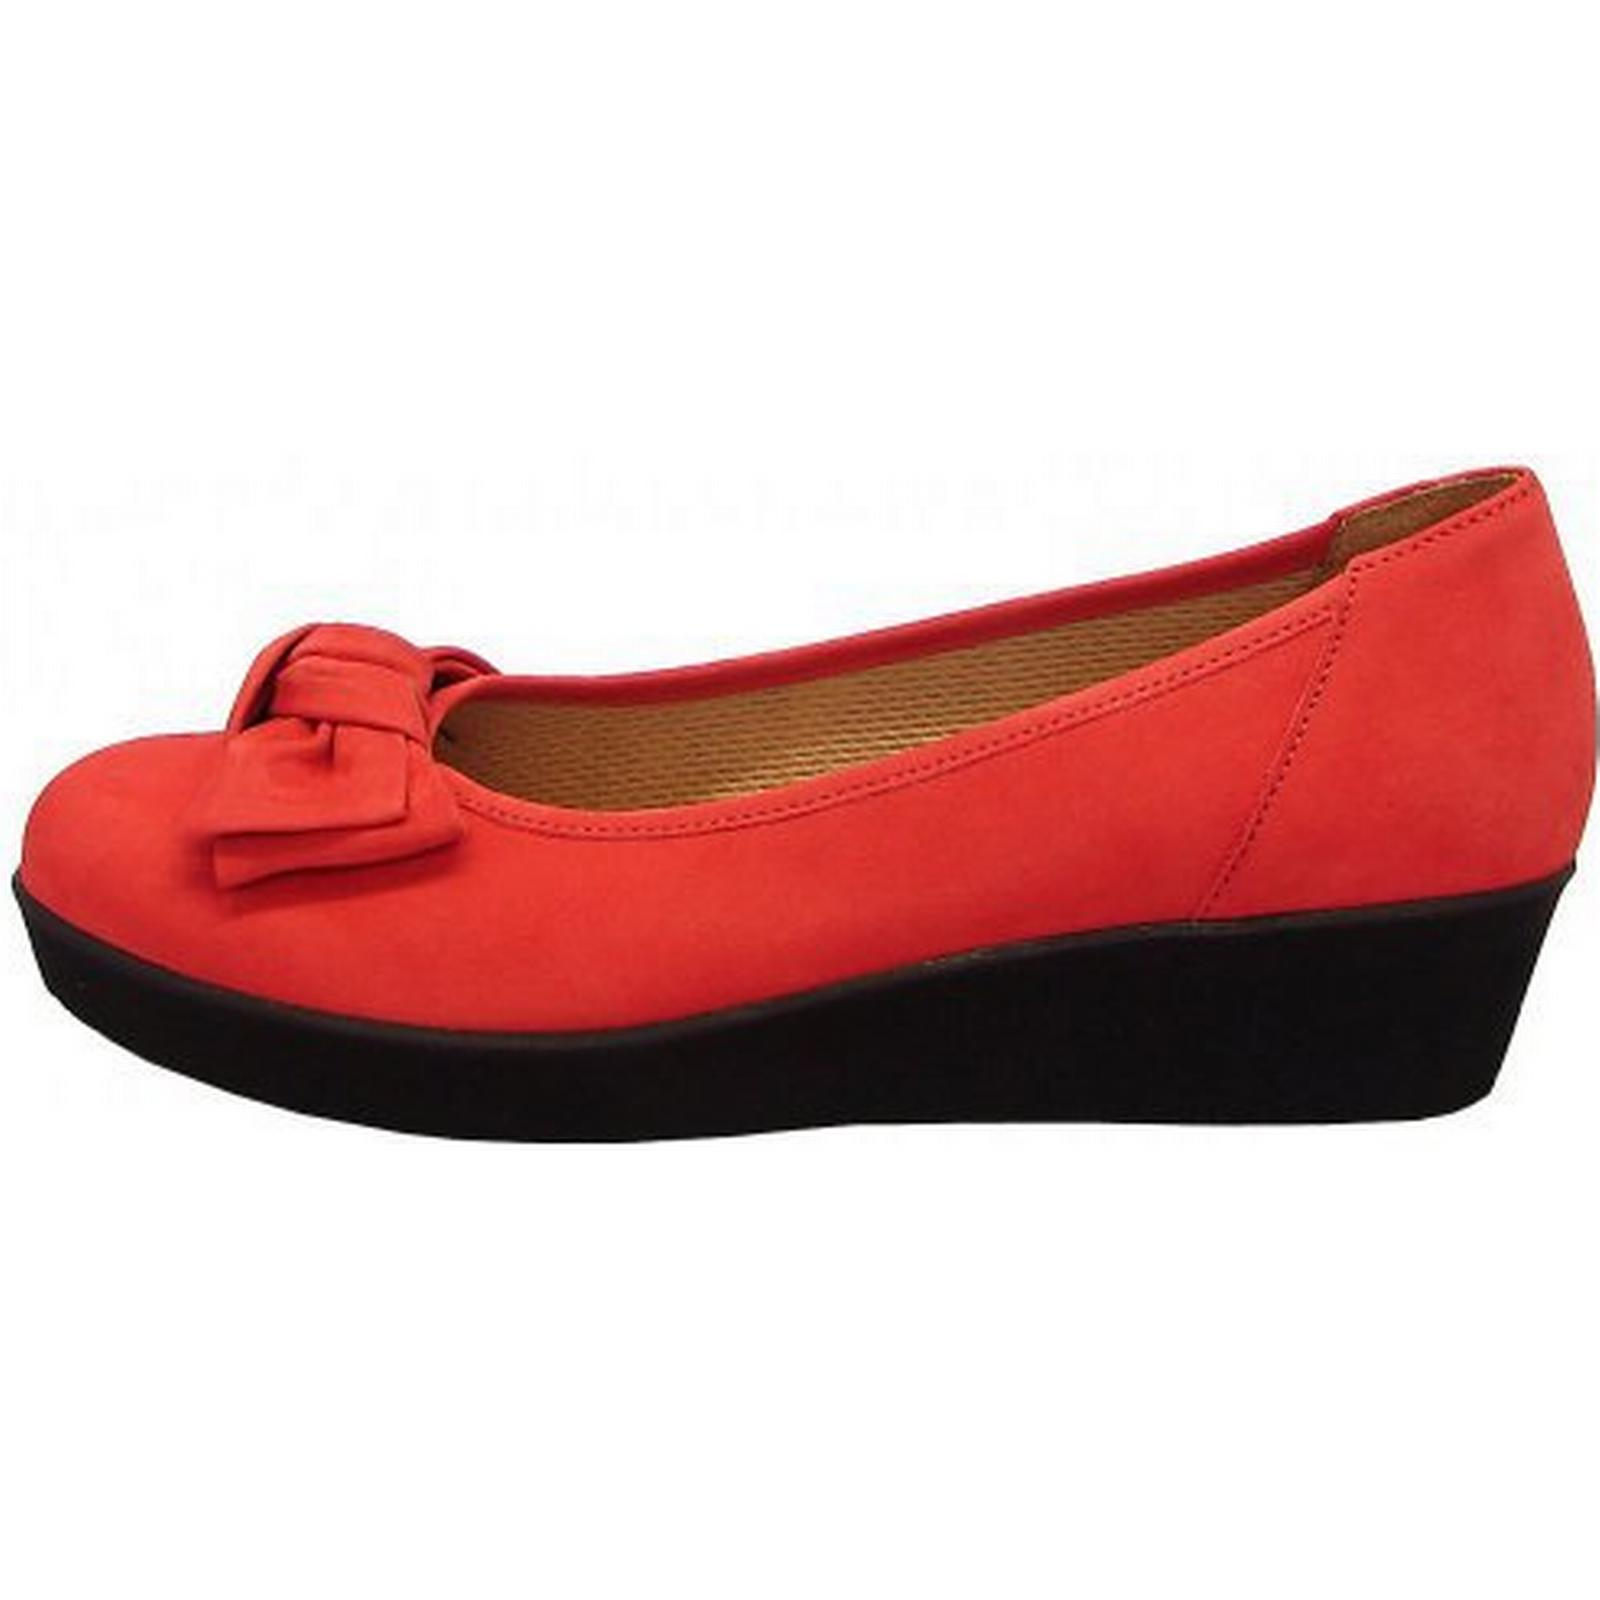 Gabor Haven Womens Wedge In Pump In Wedge Red With Bow Size: 7, Colour: RED 938d70